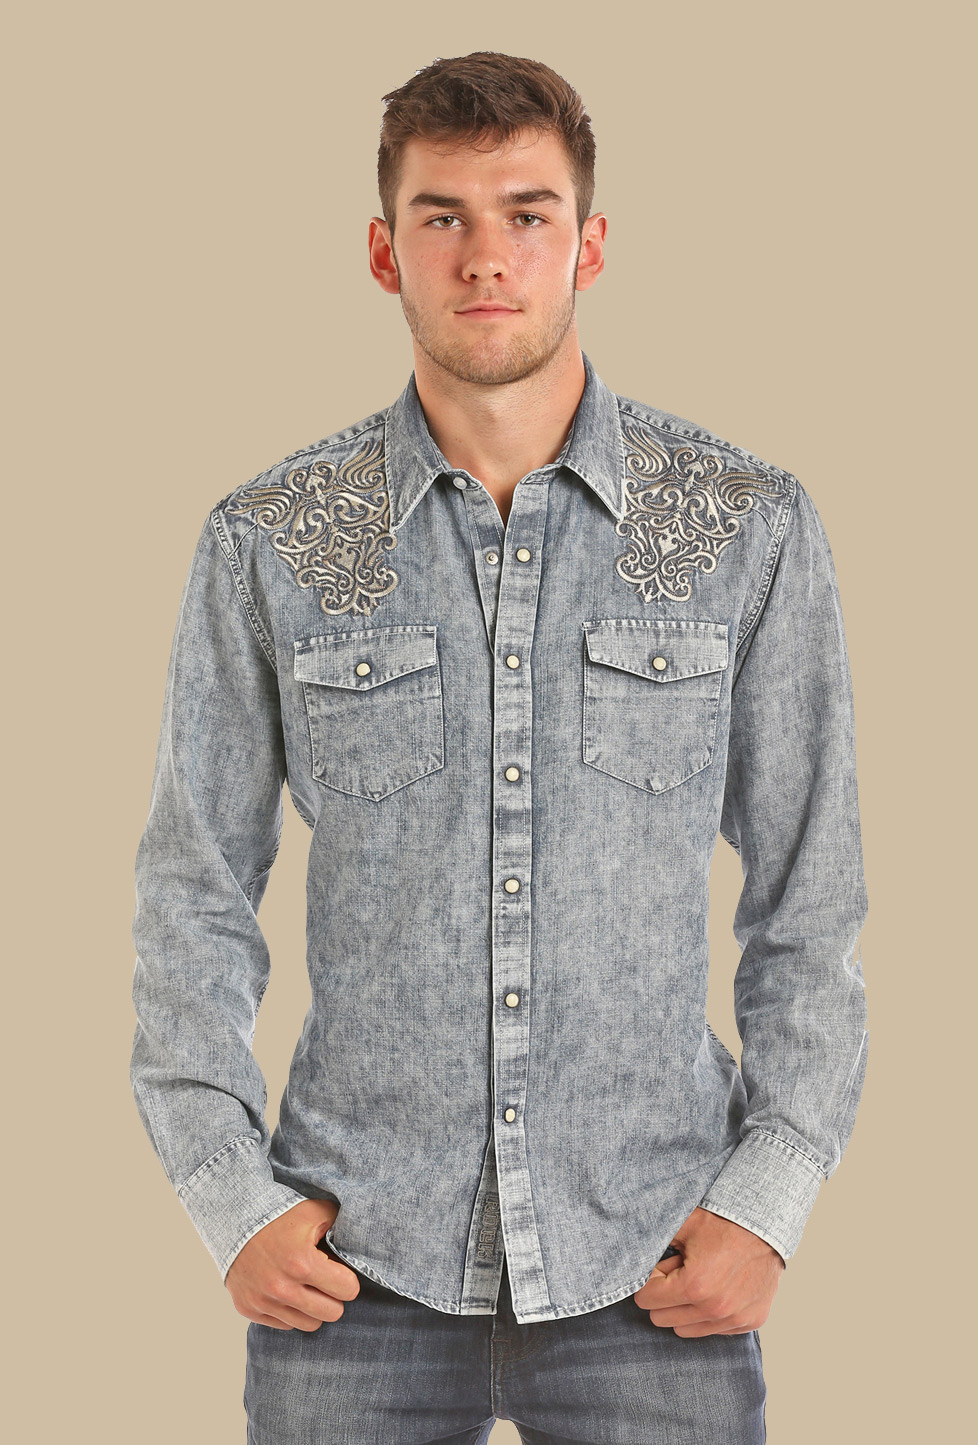 4bbc3800791 PANHANDLE SLIM MEN S LIGHT BLEACH WASHED DENIM Western ...